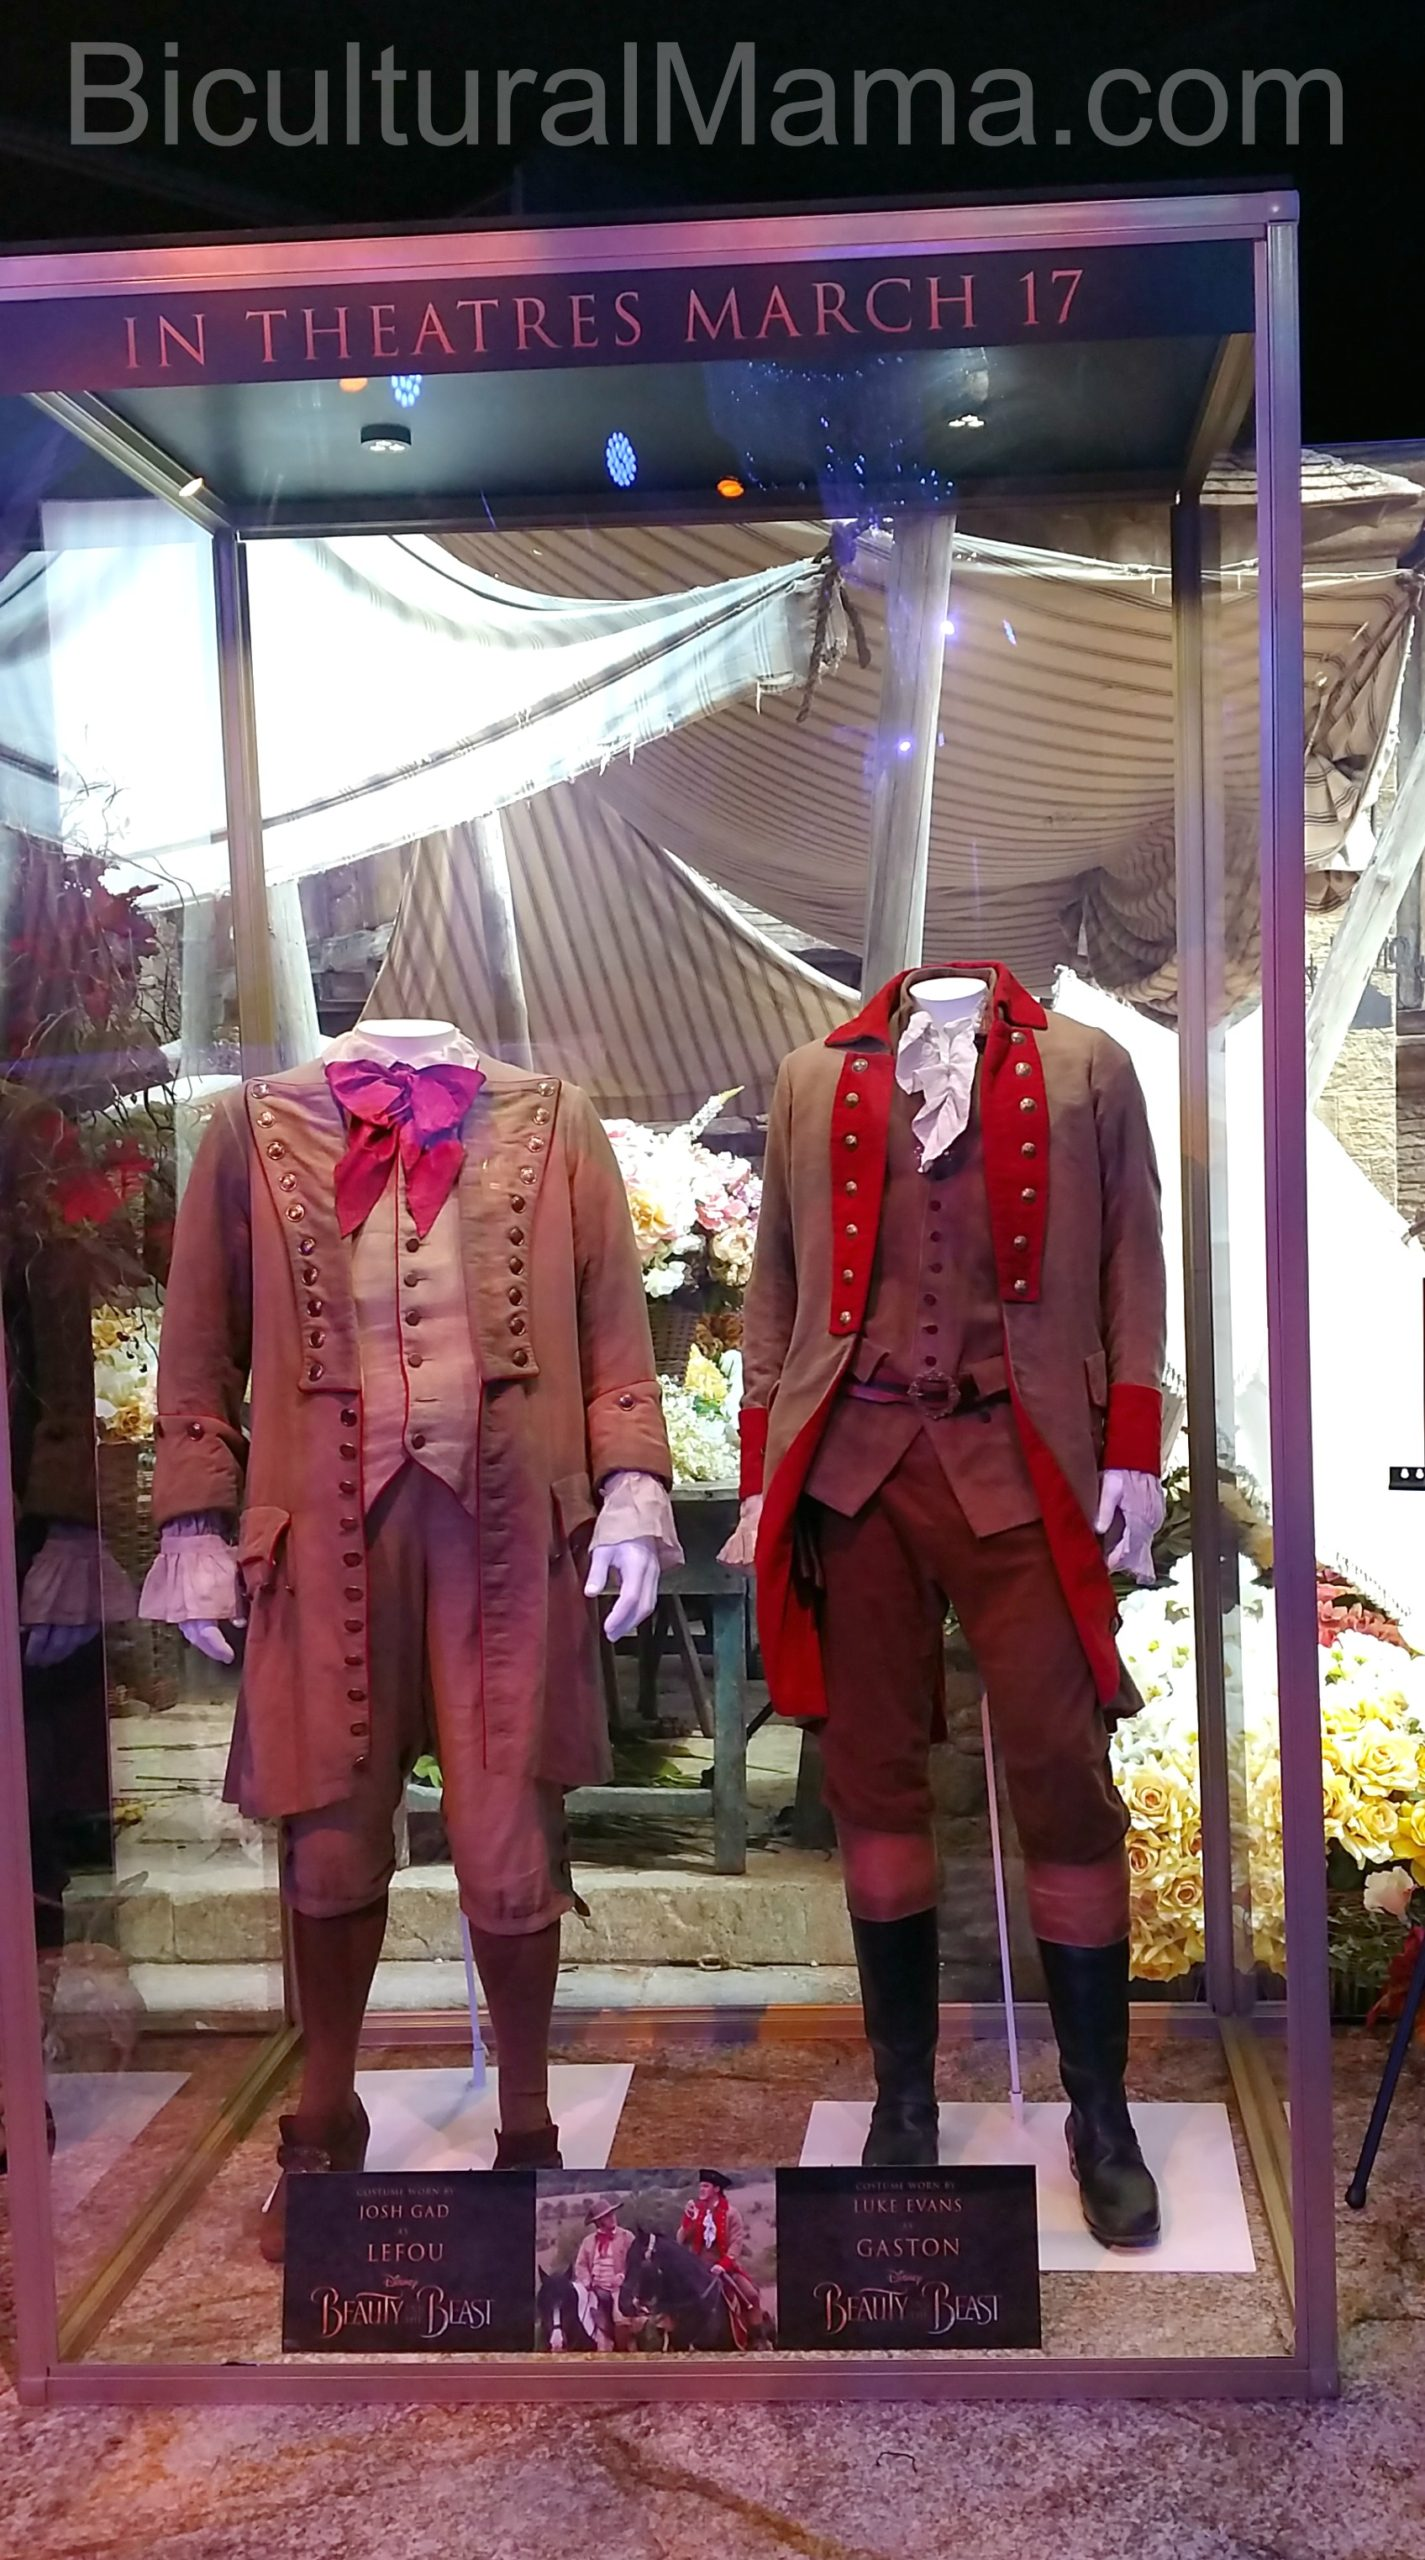 Bicultural Mama Beauty and the Beast Uniforms